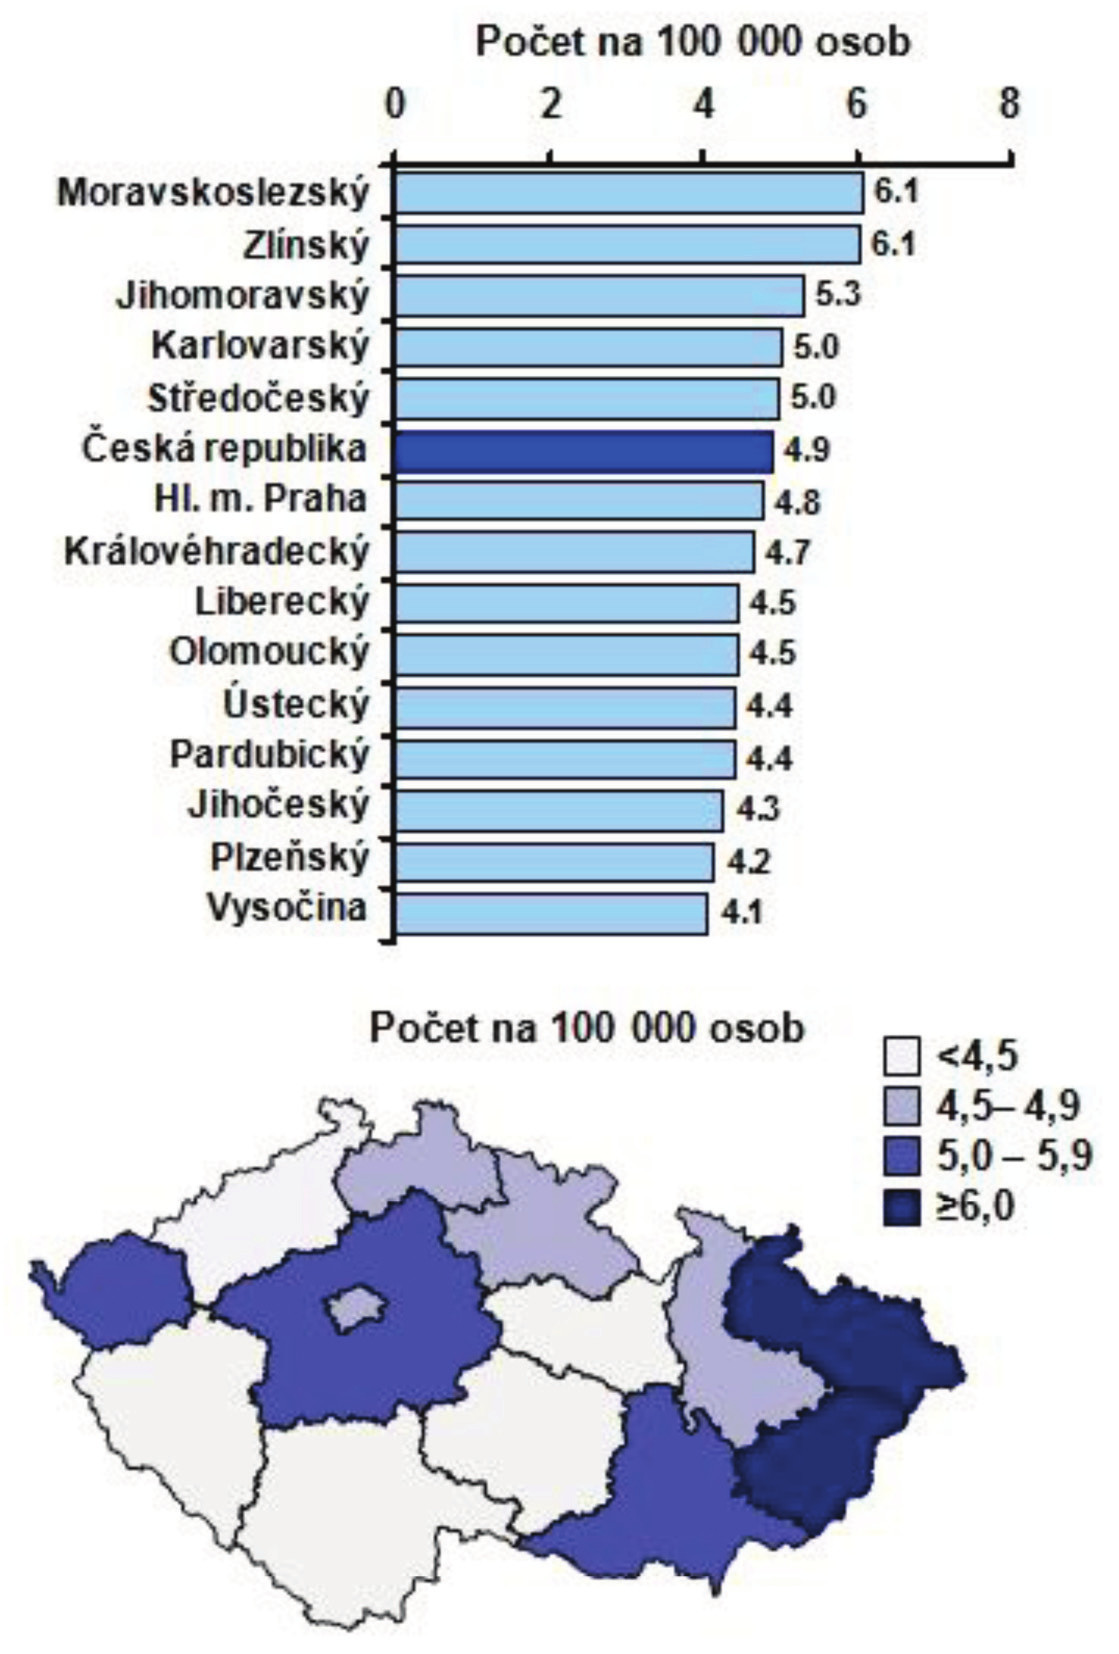 Obr. 6a: Hrubá incidence ZN jícnu (C15) v krajích ČR v období 2004–2008